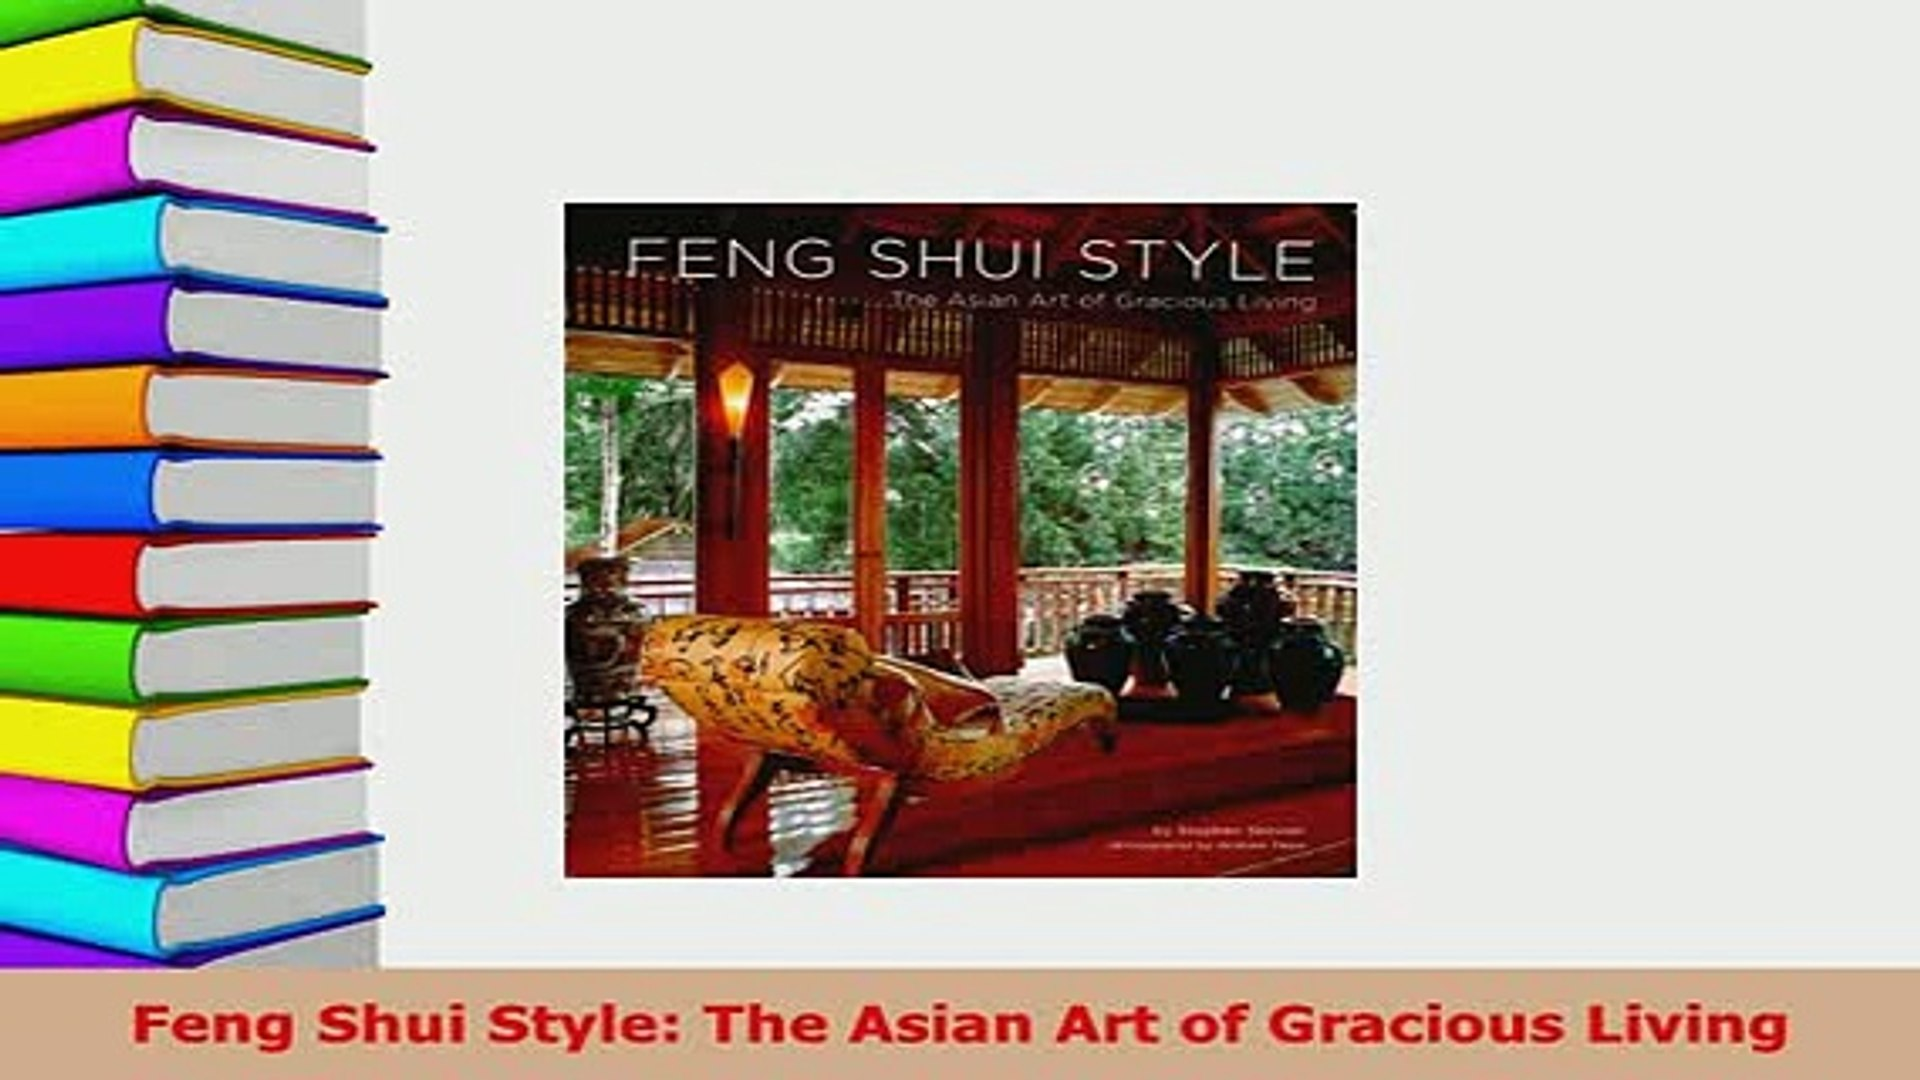 Art asian feng gracious living shui style